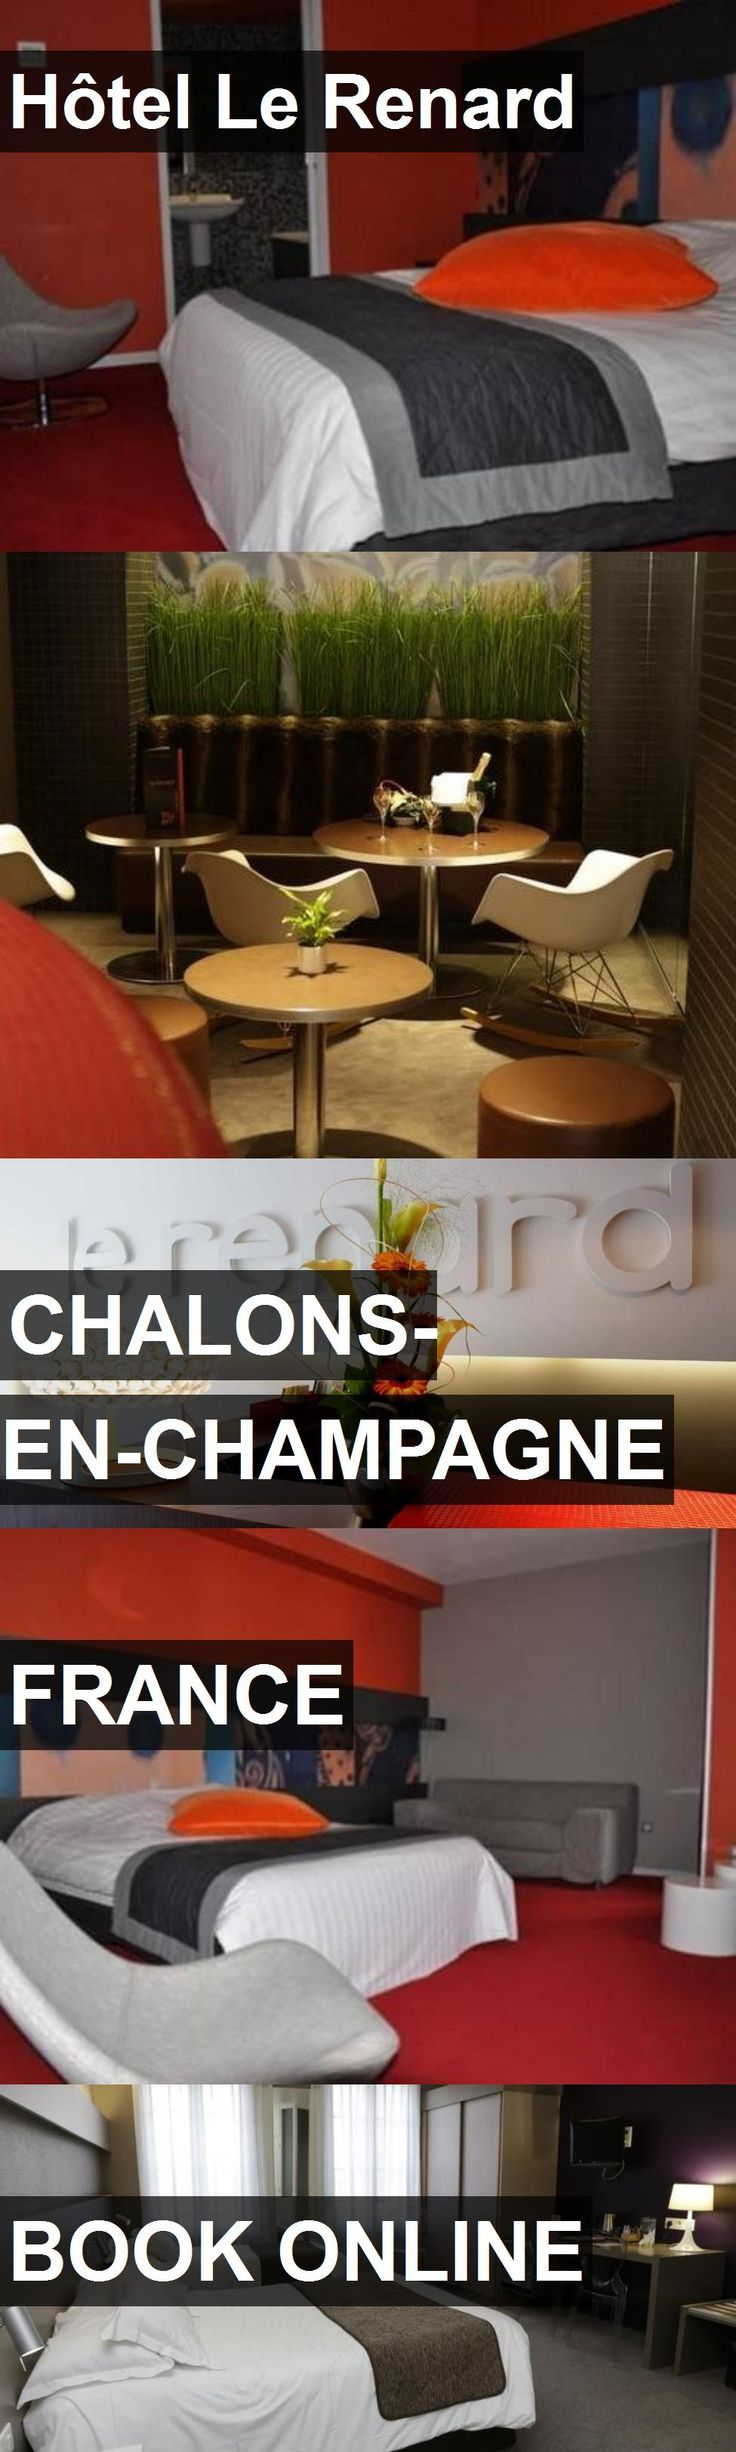 Hotel Hôtel Le Renard in Chalons-en-Champagne, France. For more information, photos, reviews and best prices please follow the link. #France #Chalons-en-Champagne #travel #vacation #hotel